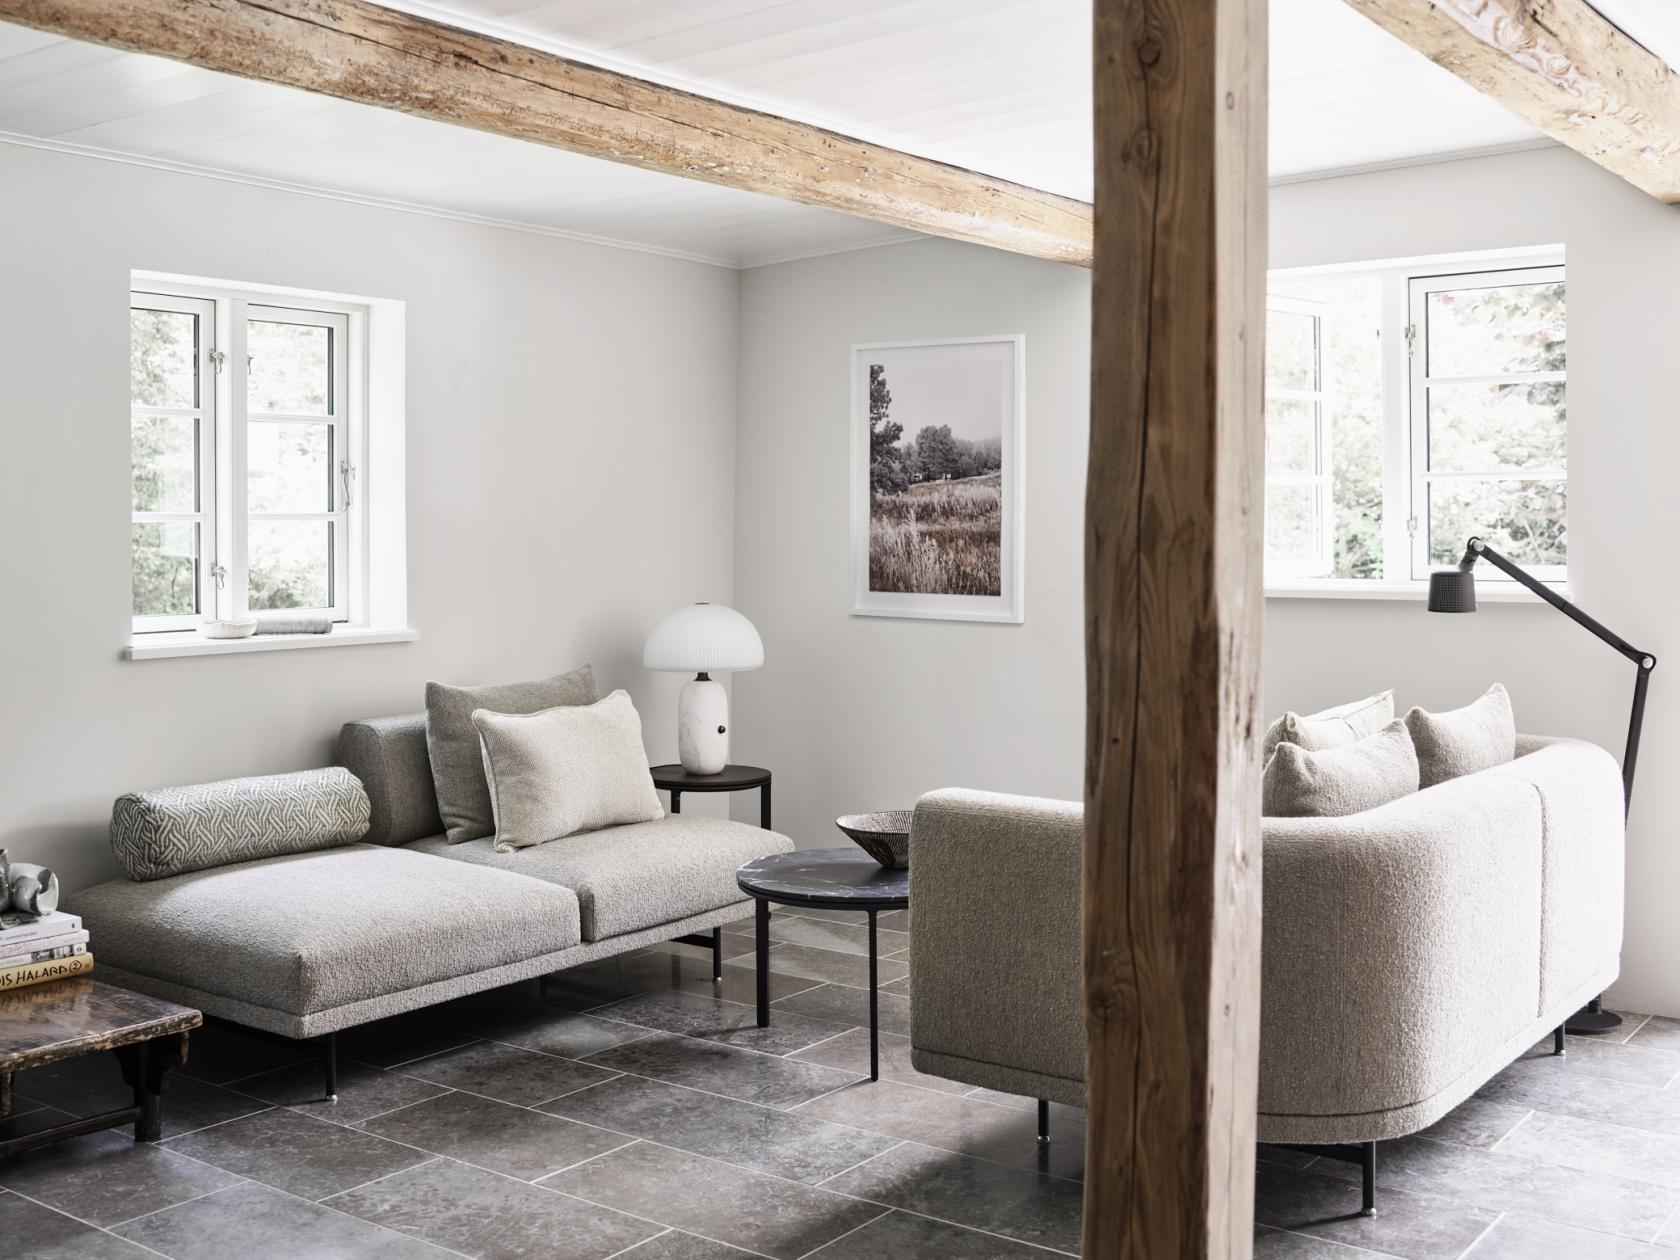 Sofas by Vipp nestle in the living room